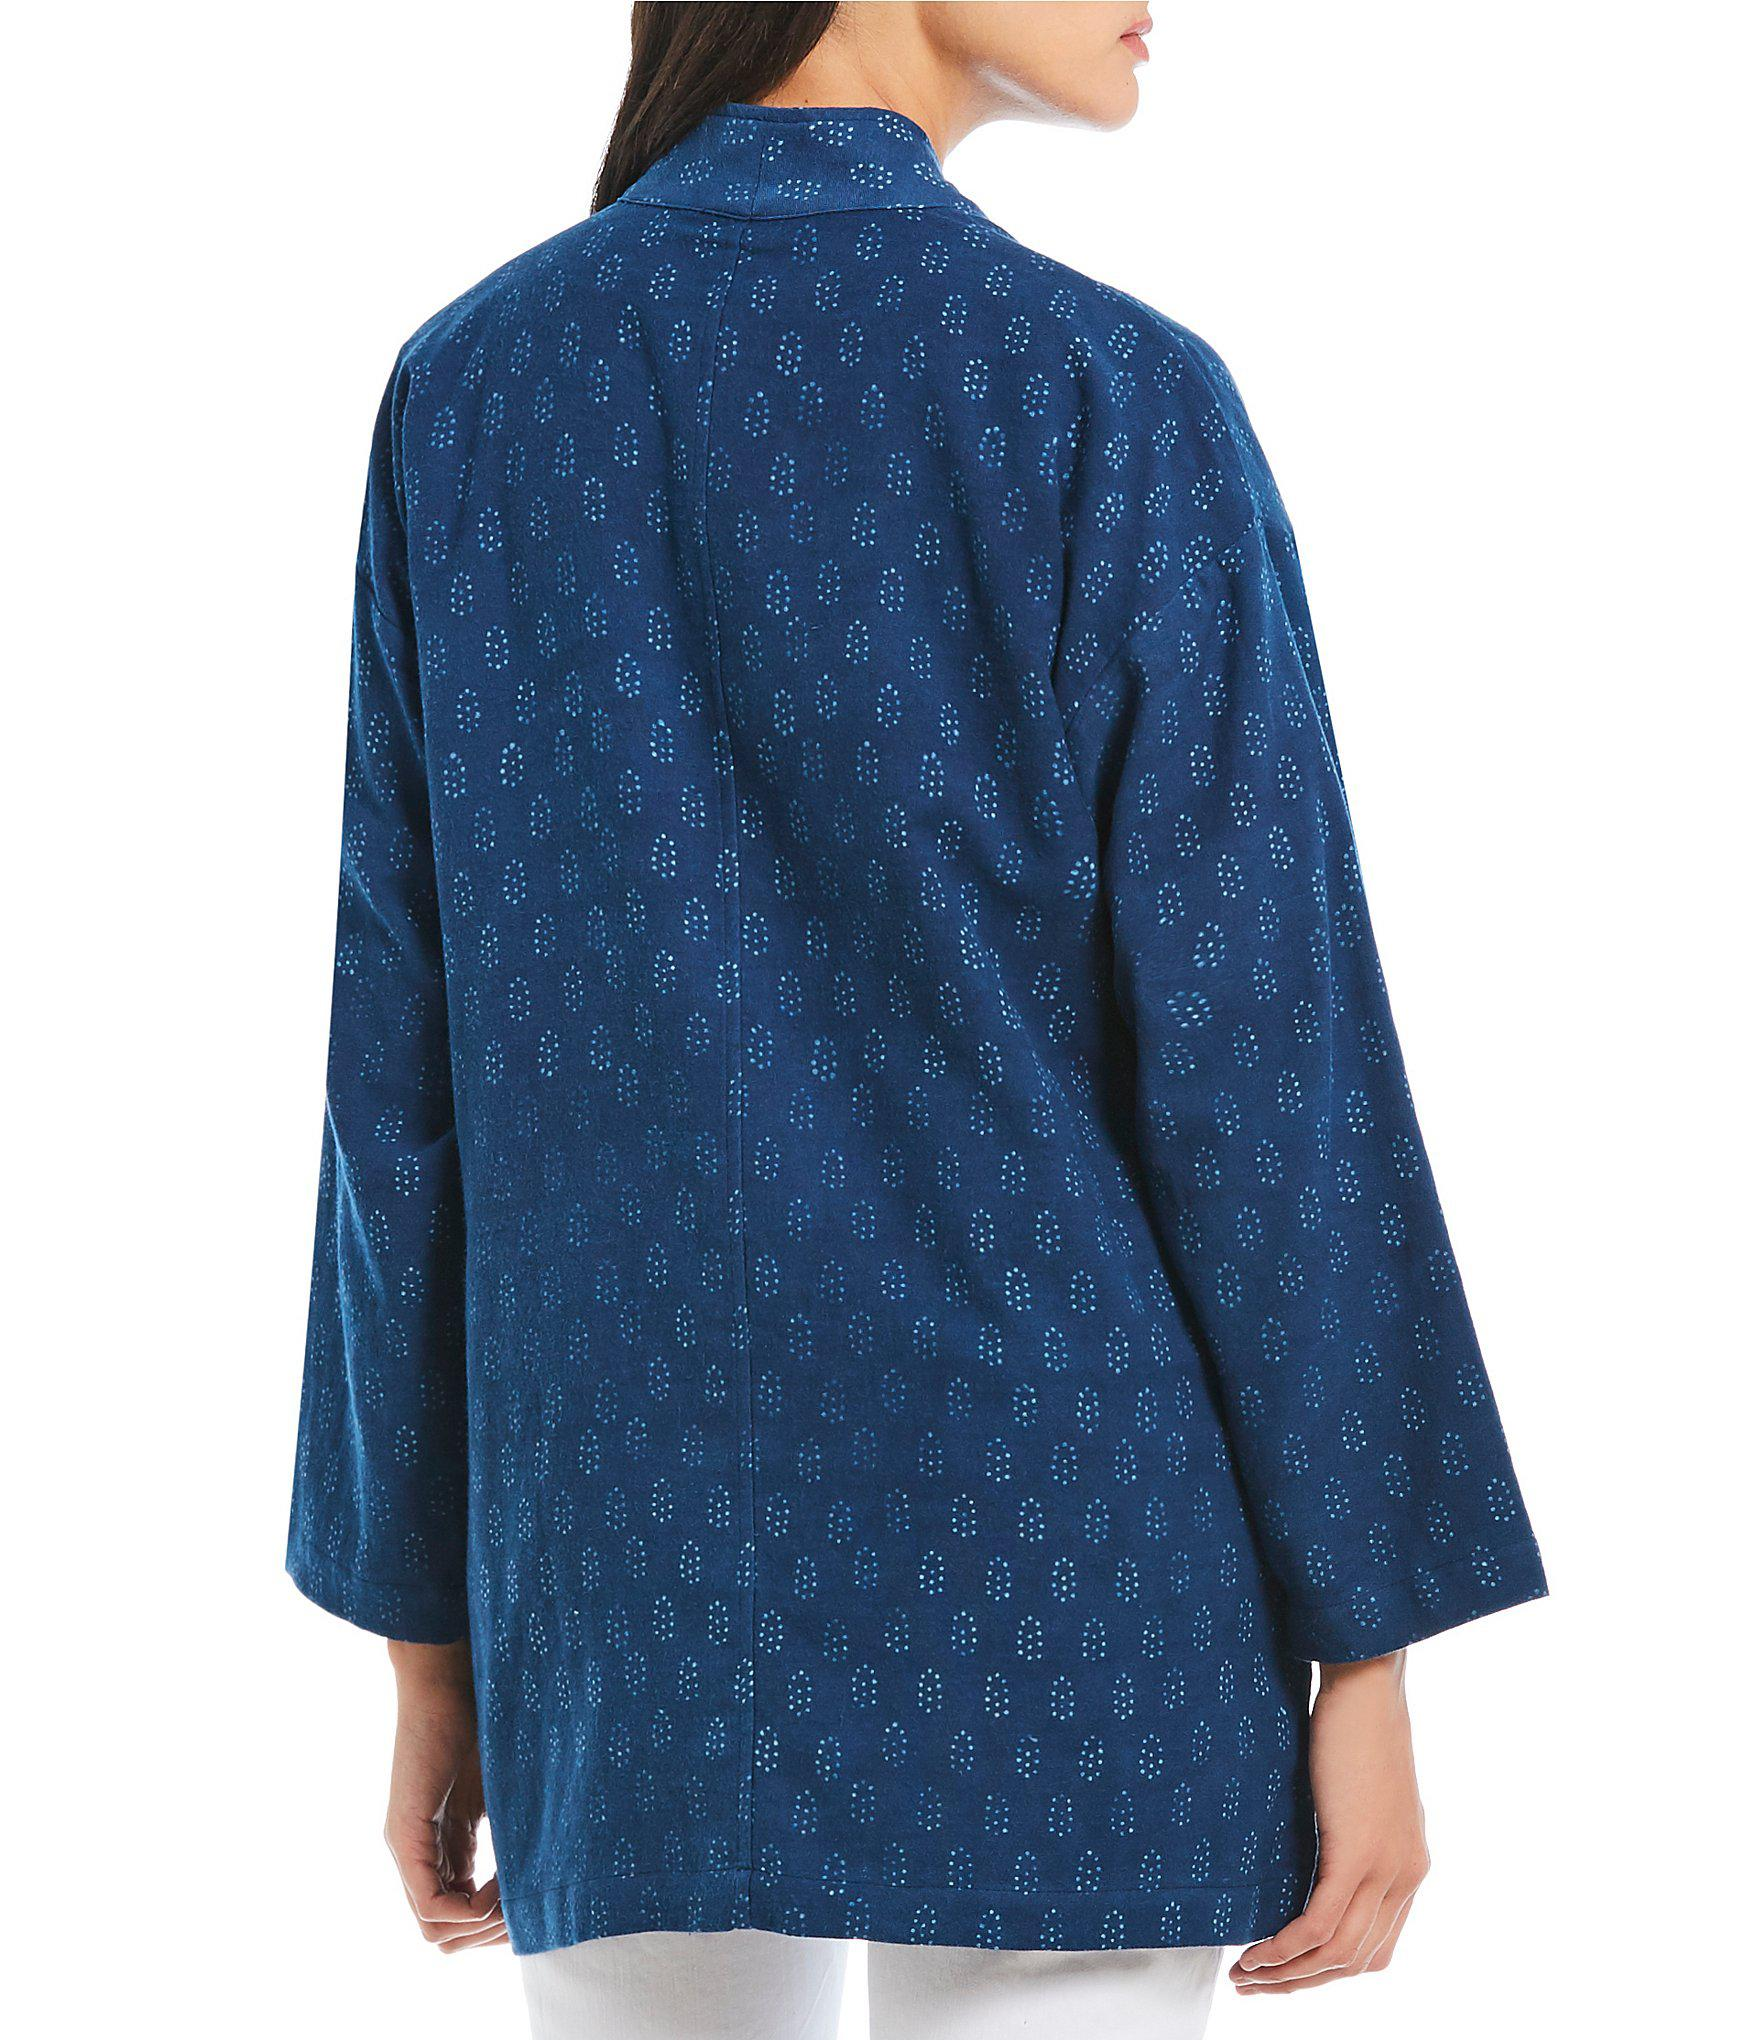 ad017273e6a Eileen Fisher - Blue Petite Size Long Kimono Jacket - Lyst. View fullscreen